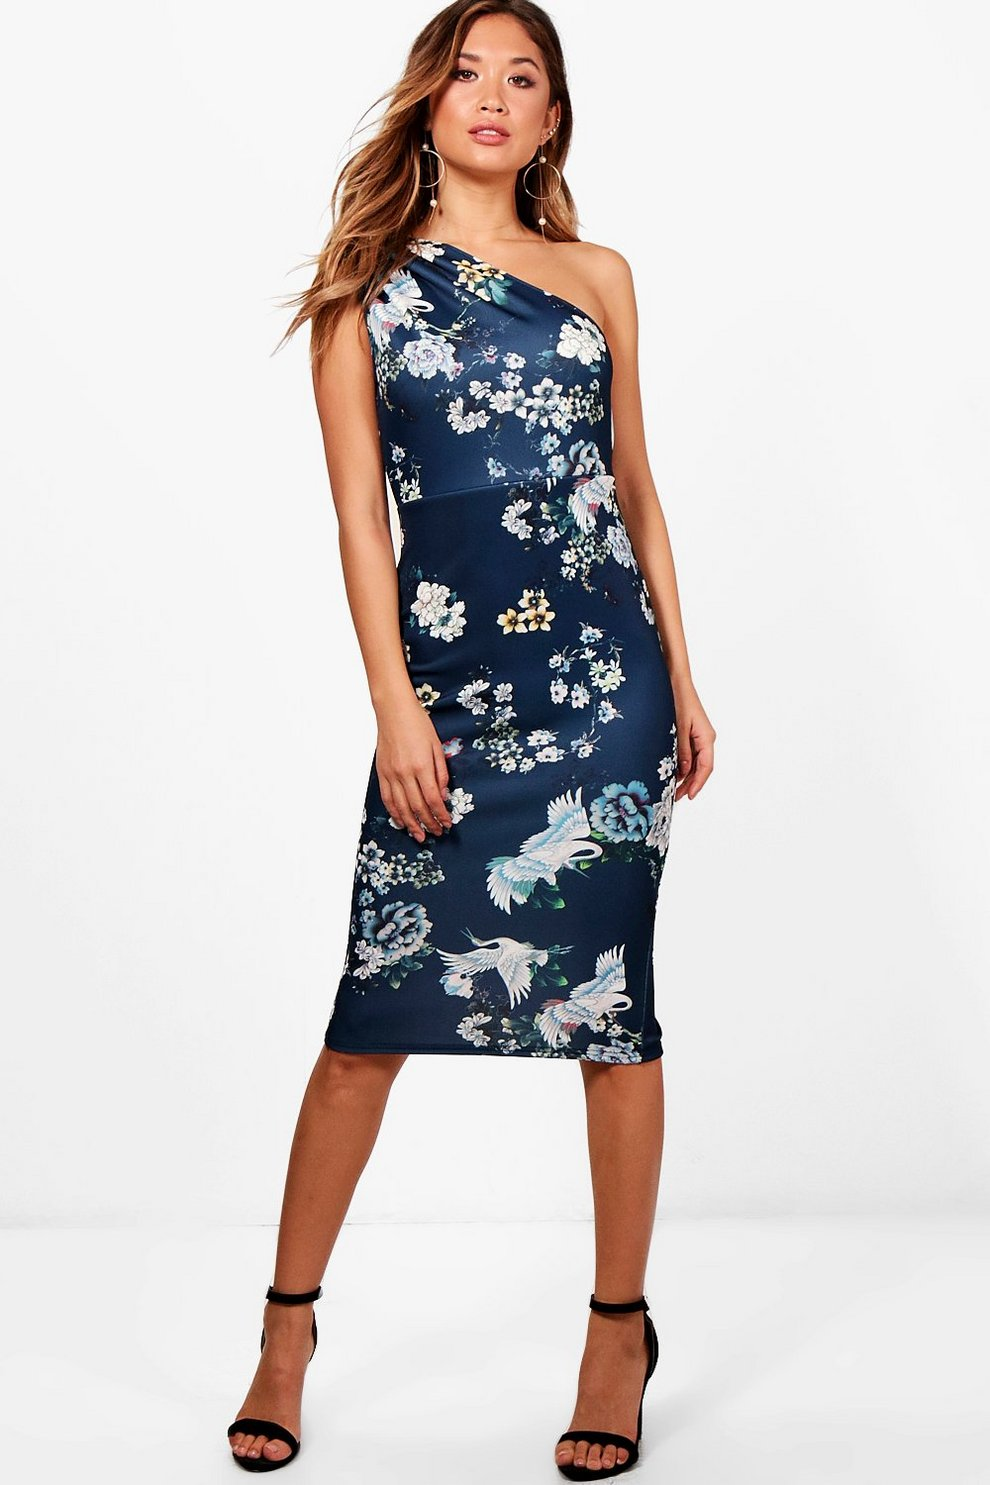 ae90c92ec222 Boohoo One Shoulder Floral Midi Dress - raveitsafe